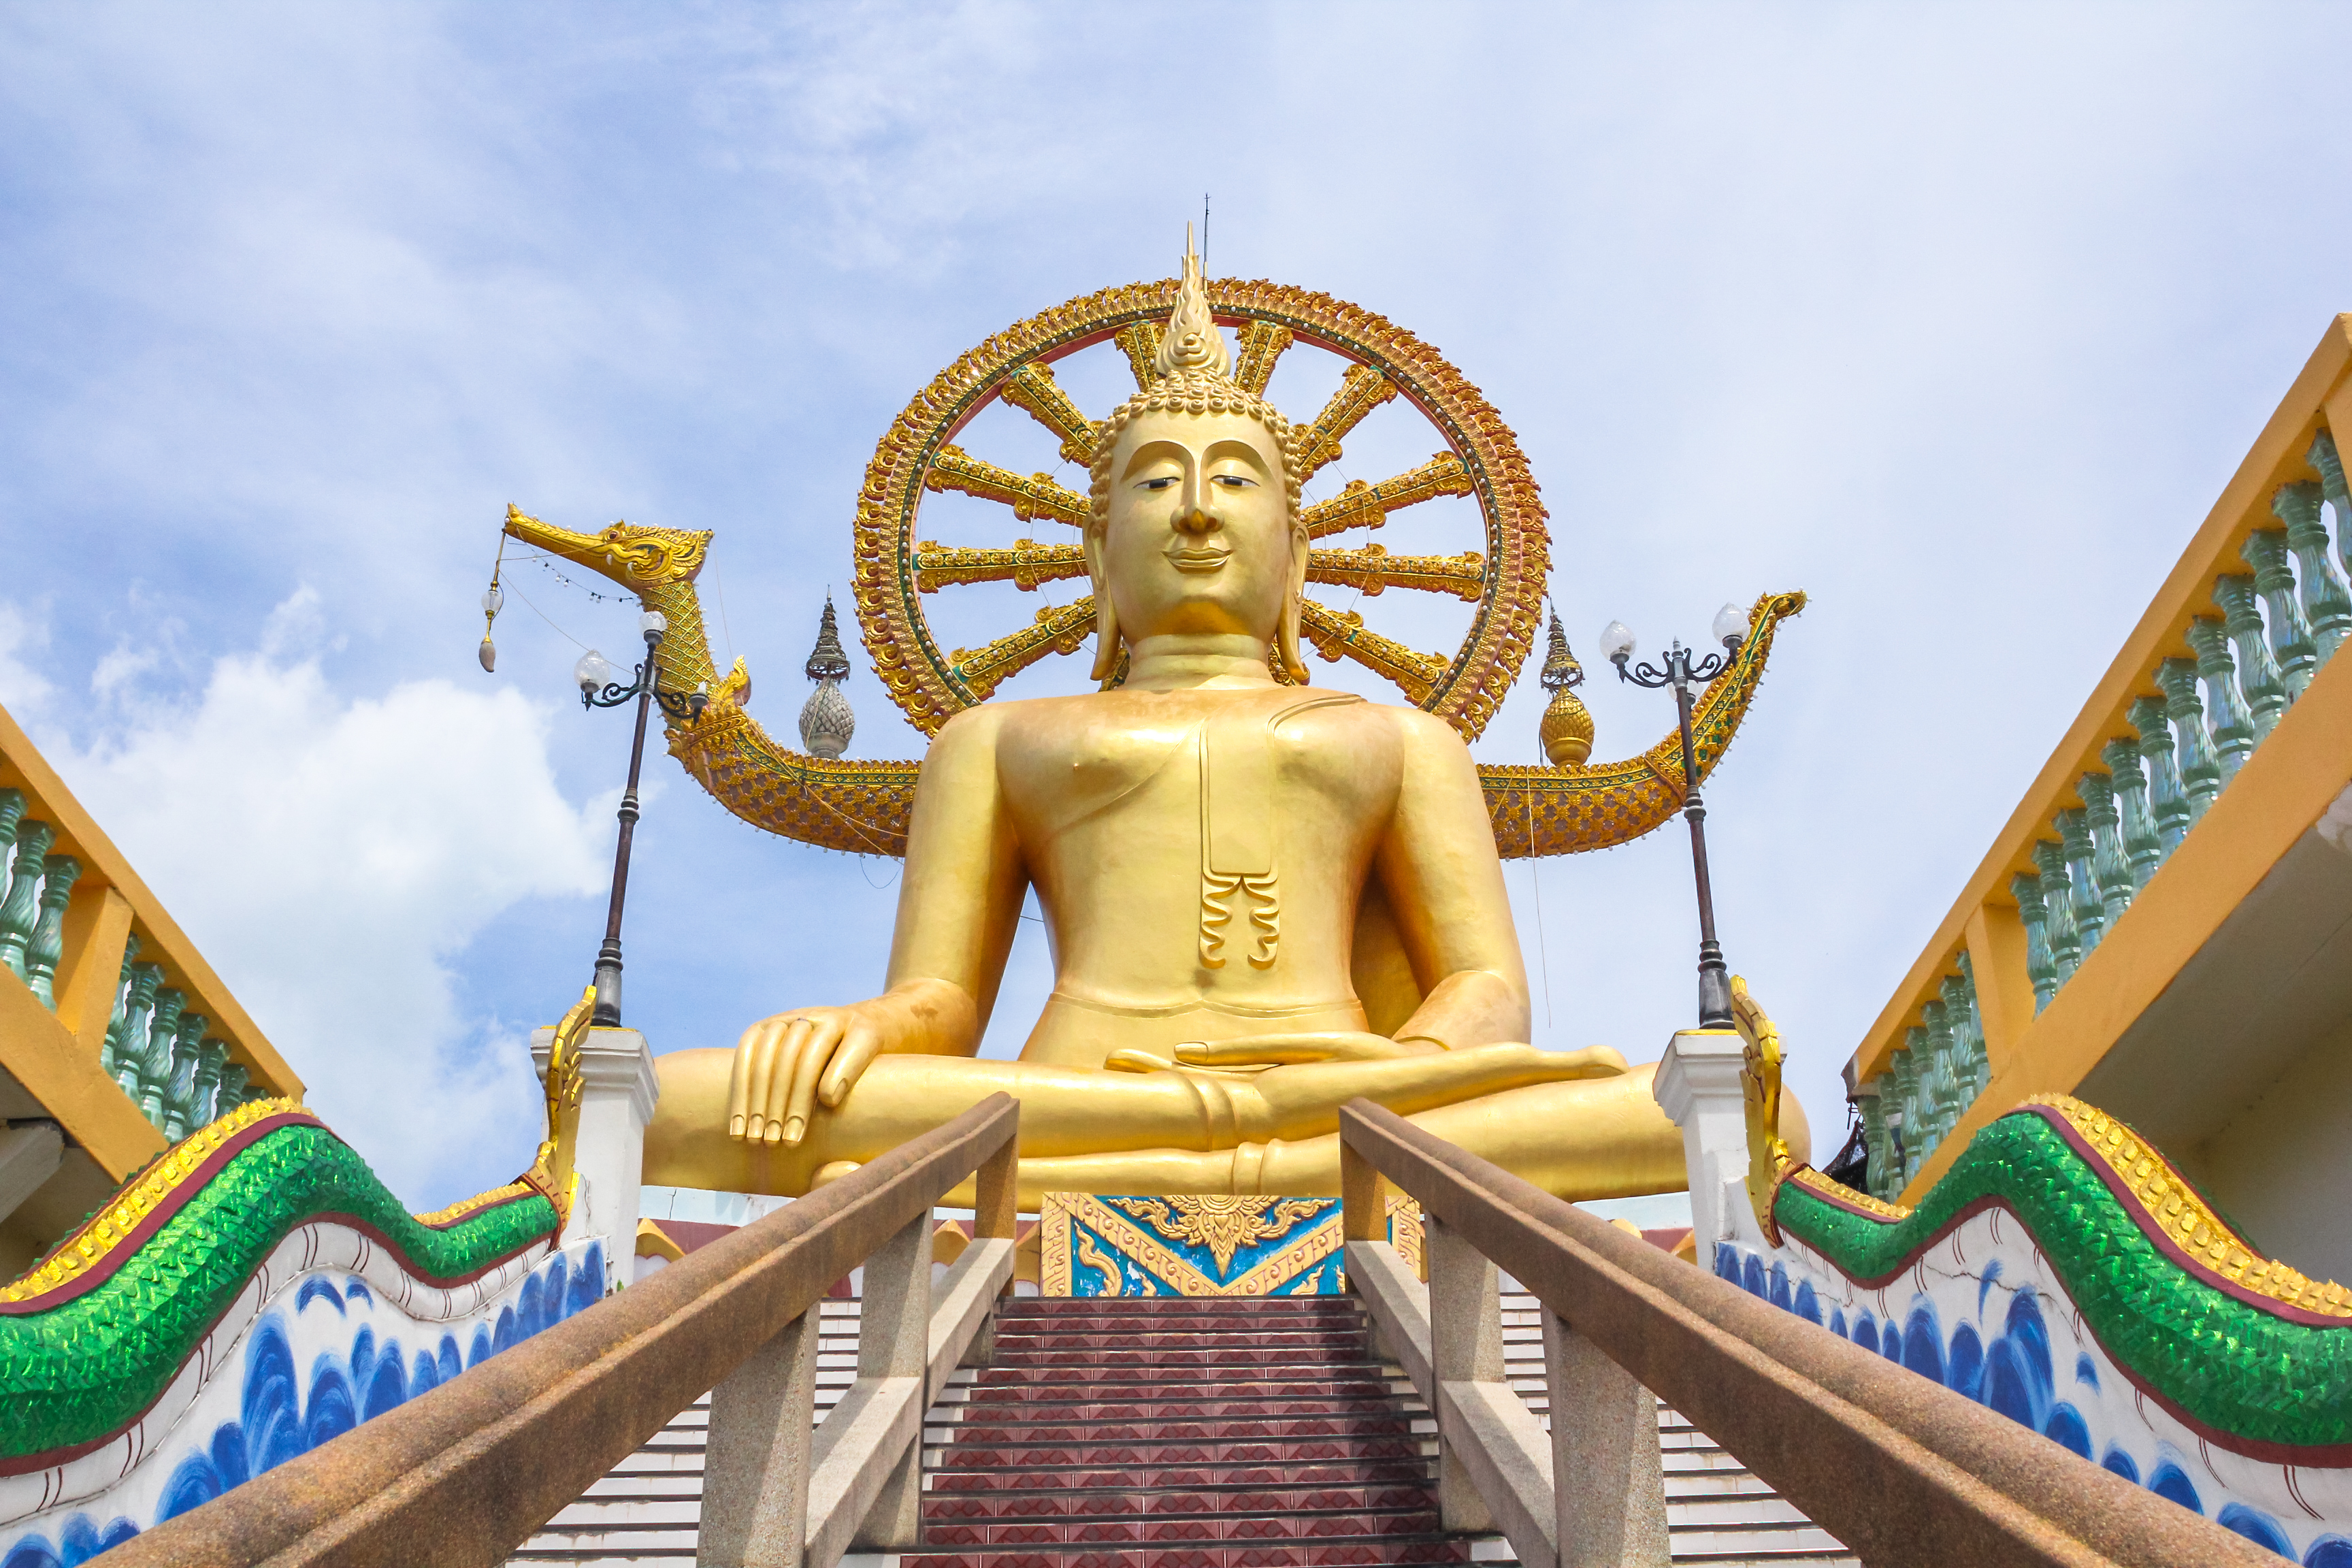 The Big Buddha Temple (Wat Phra Yai) – Koh Samui, Thailand